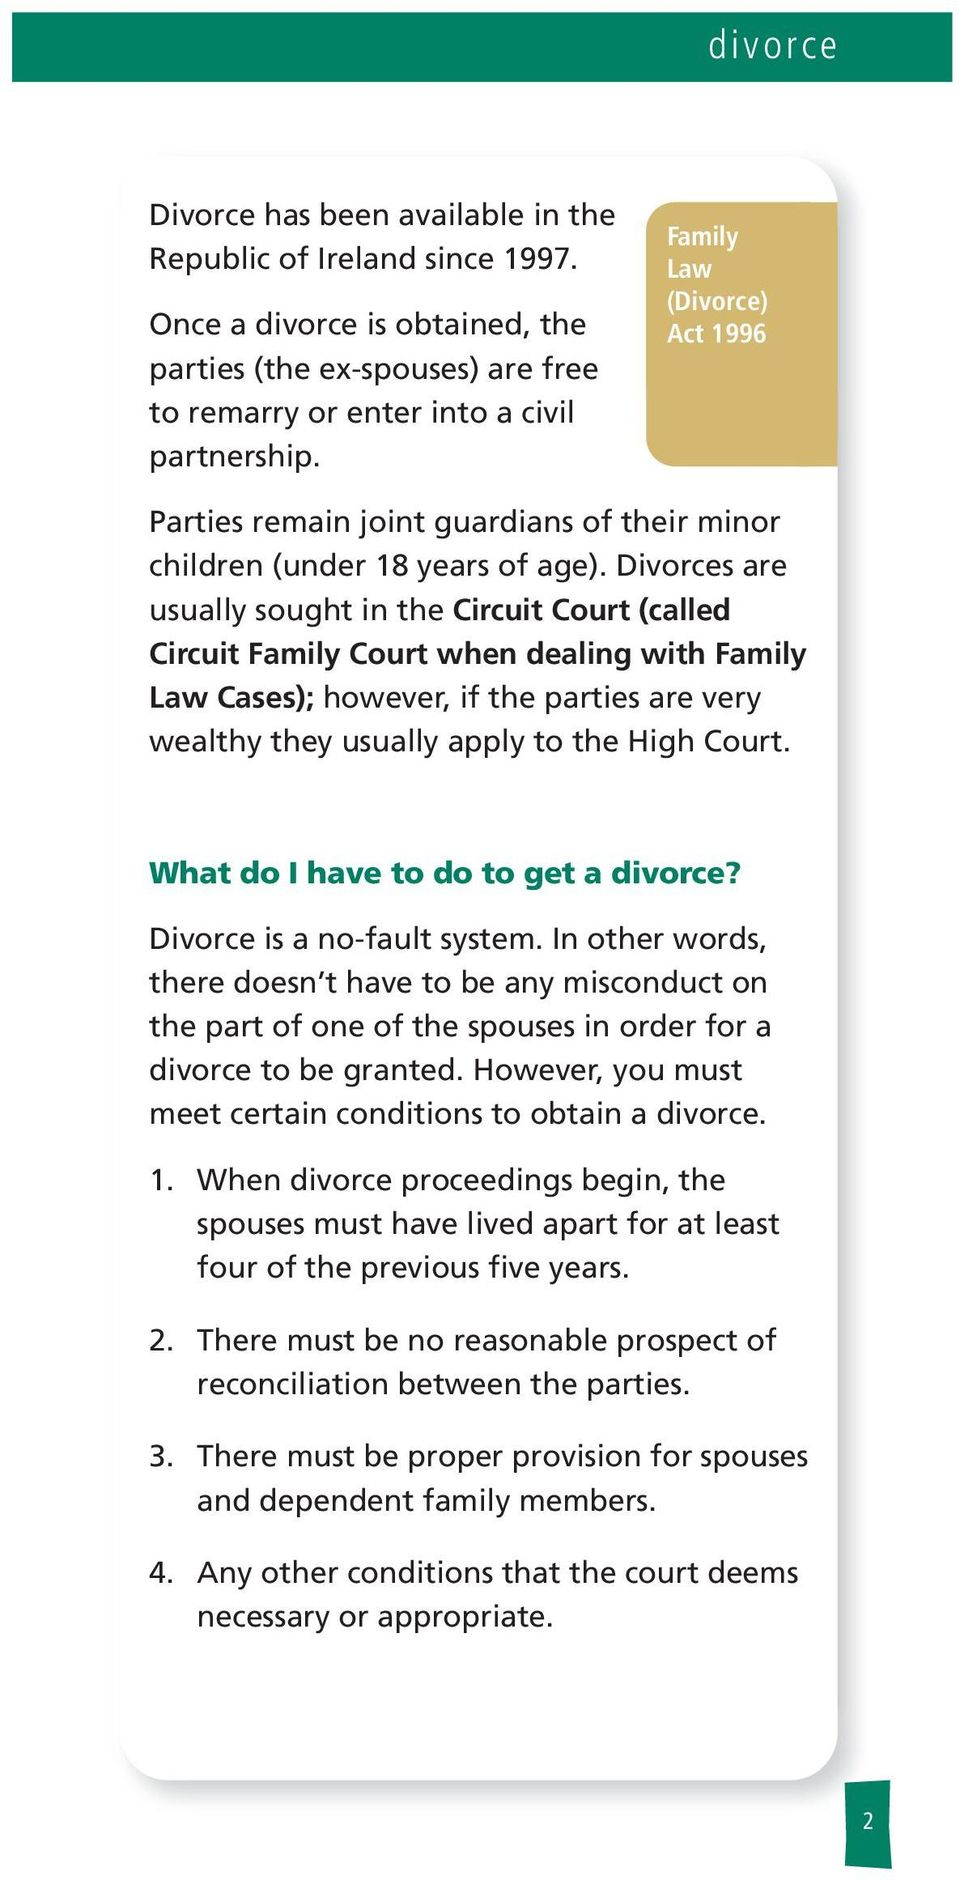 Divorces are usuay sought in the Circuit Court (caed Circuit Famiy Court when deaing with Famiy Law Cases); however, if the parties are very weathy they usuay appy to the High Court.